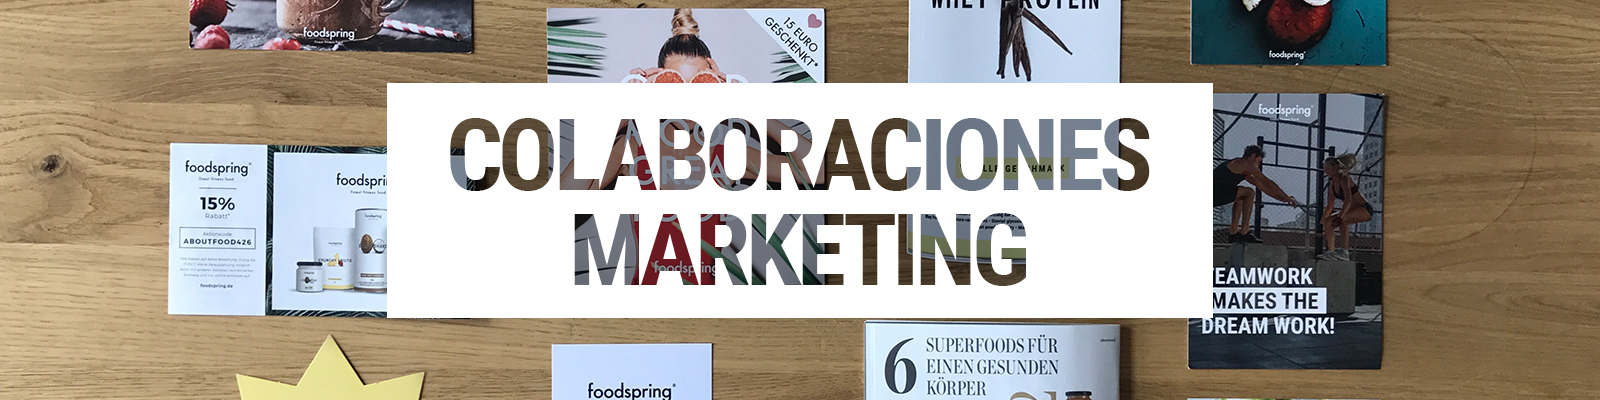 marketing colaboraciones